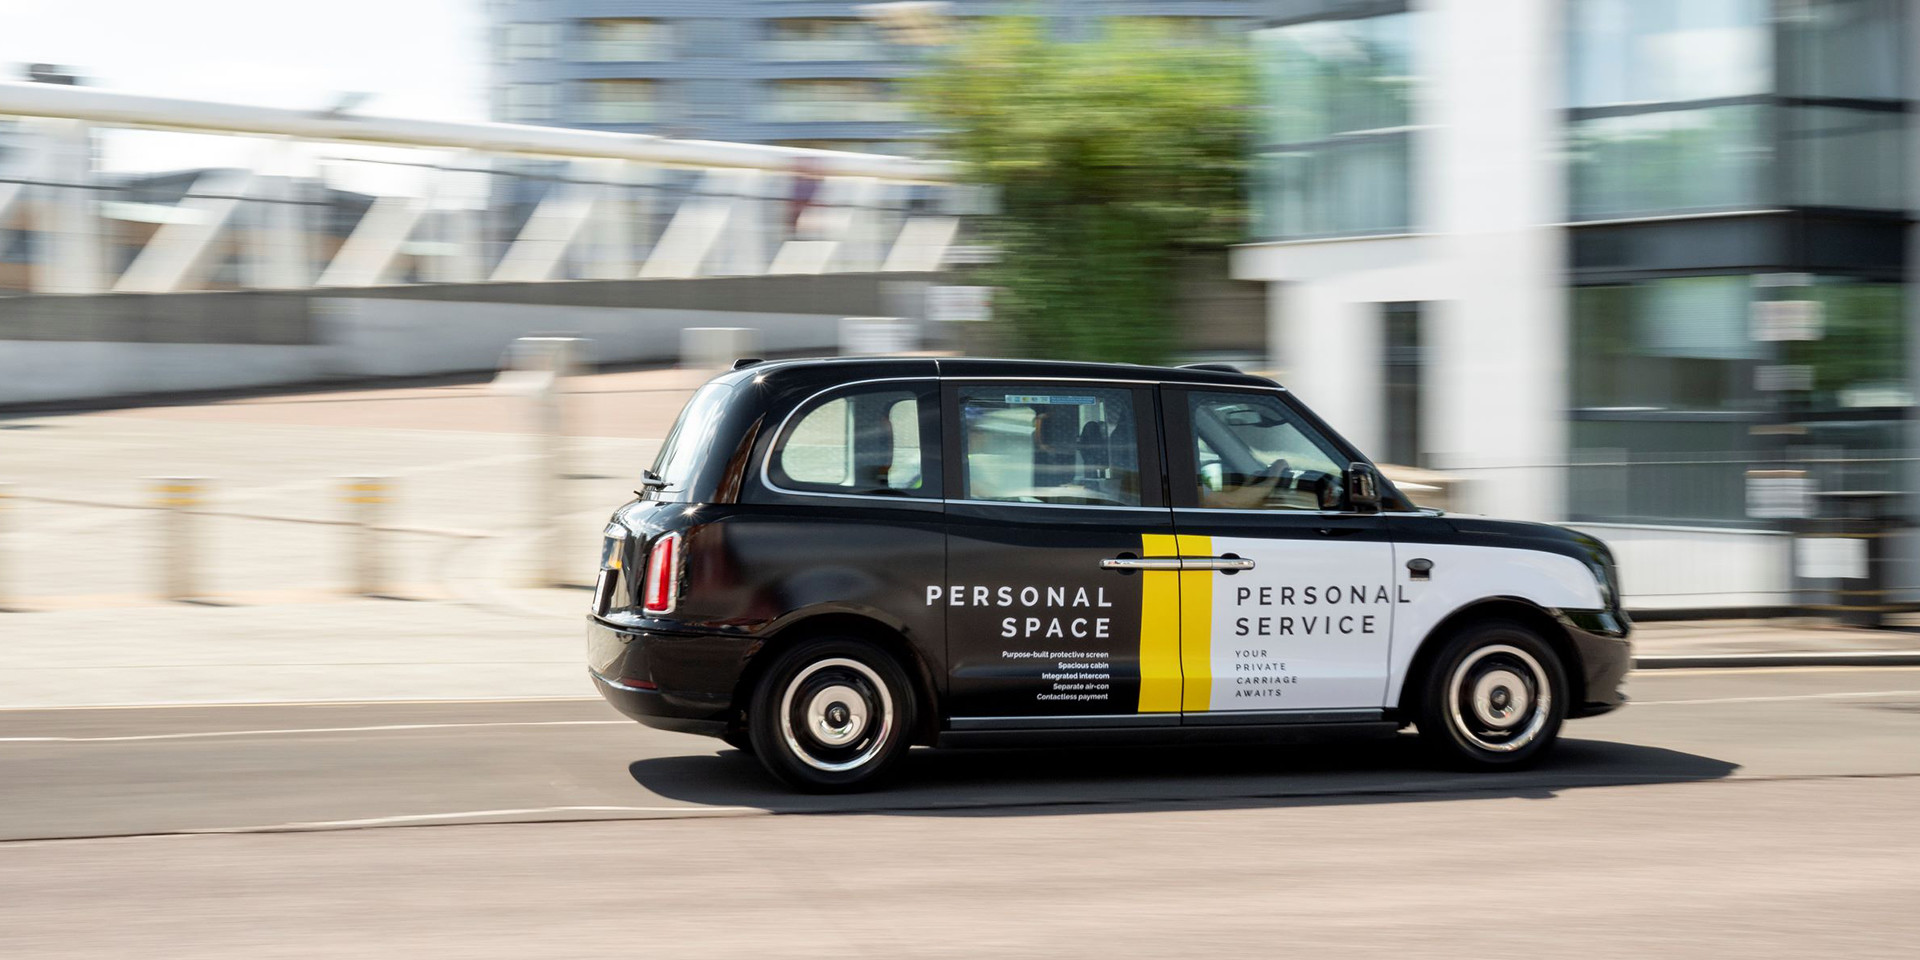 London electric black cab ad space